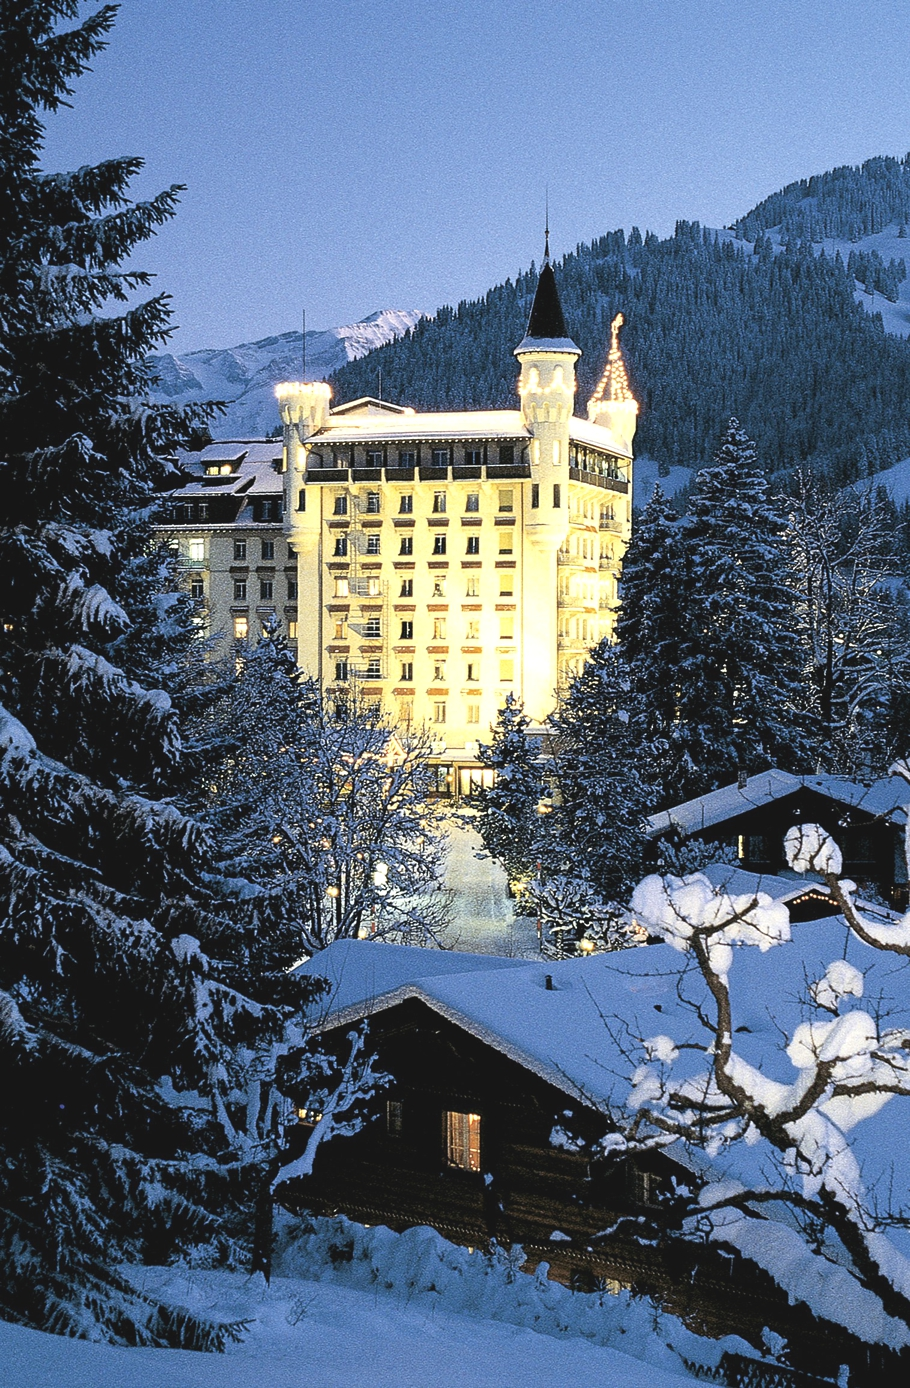 12-days-Christmas-Luxury-Hotels-Adelto-00